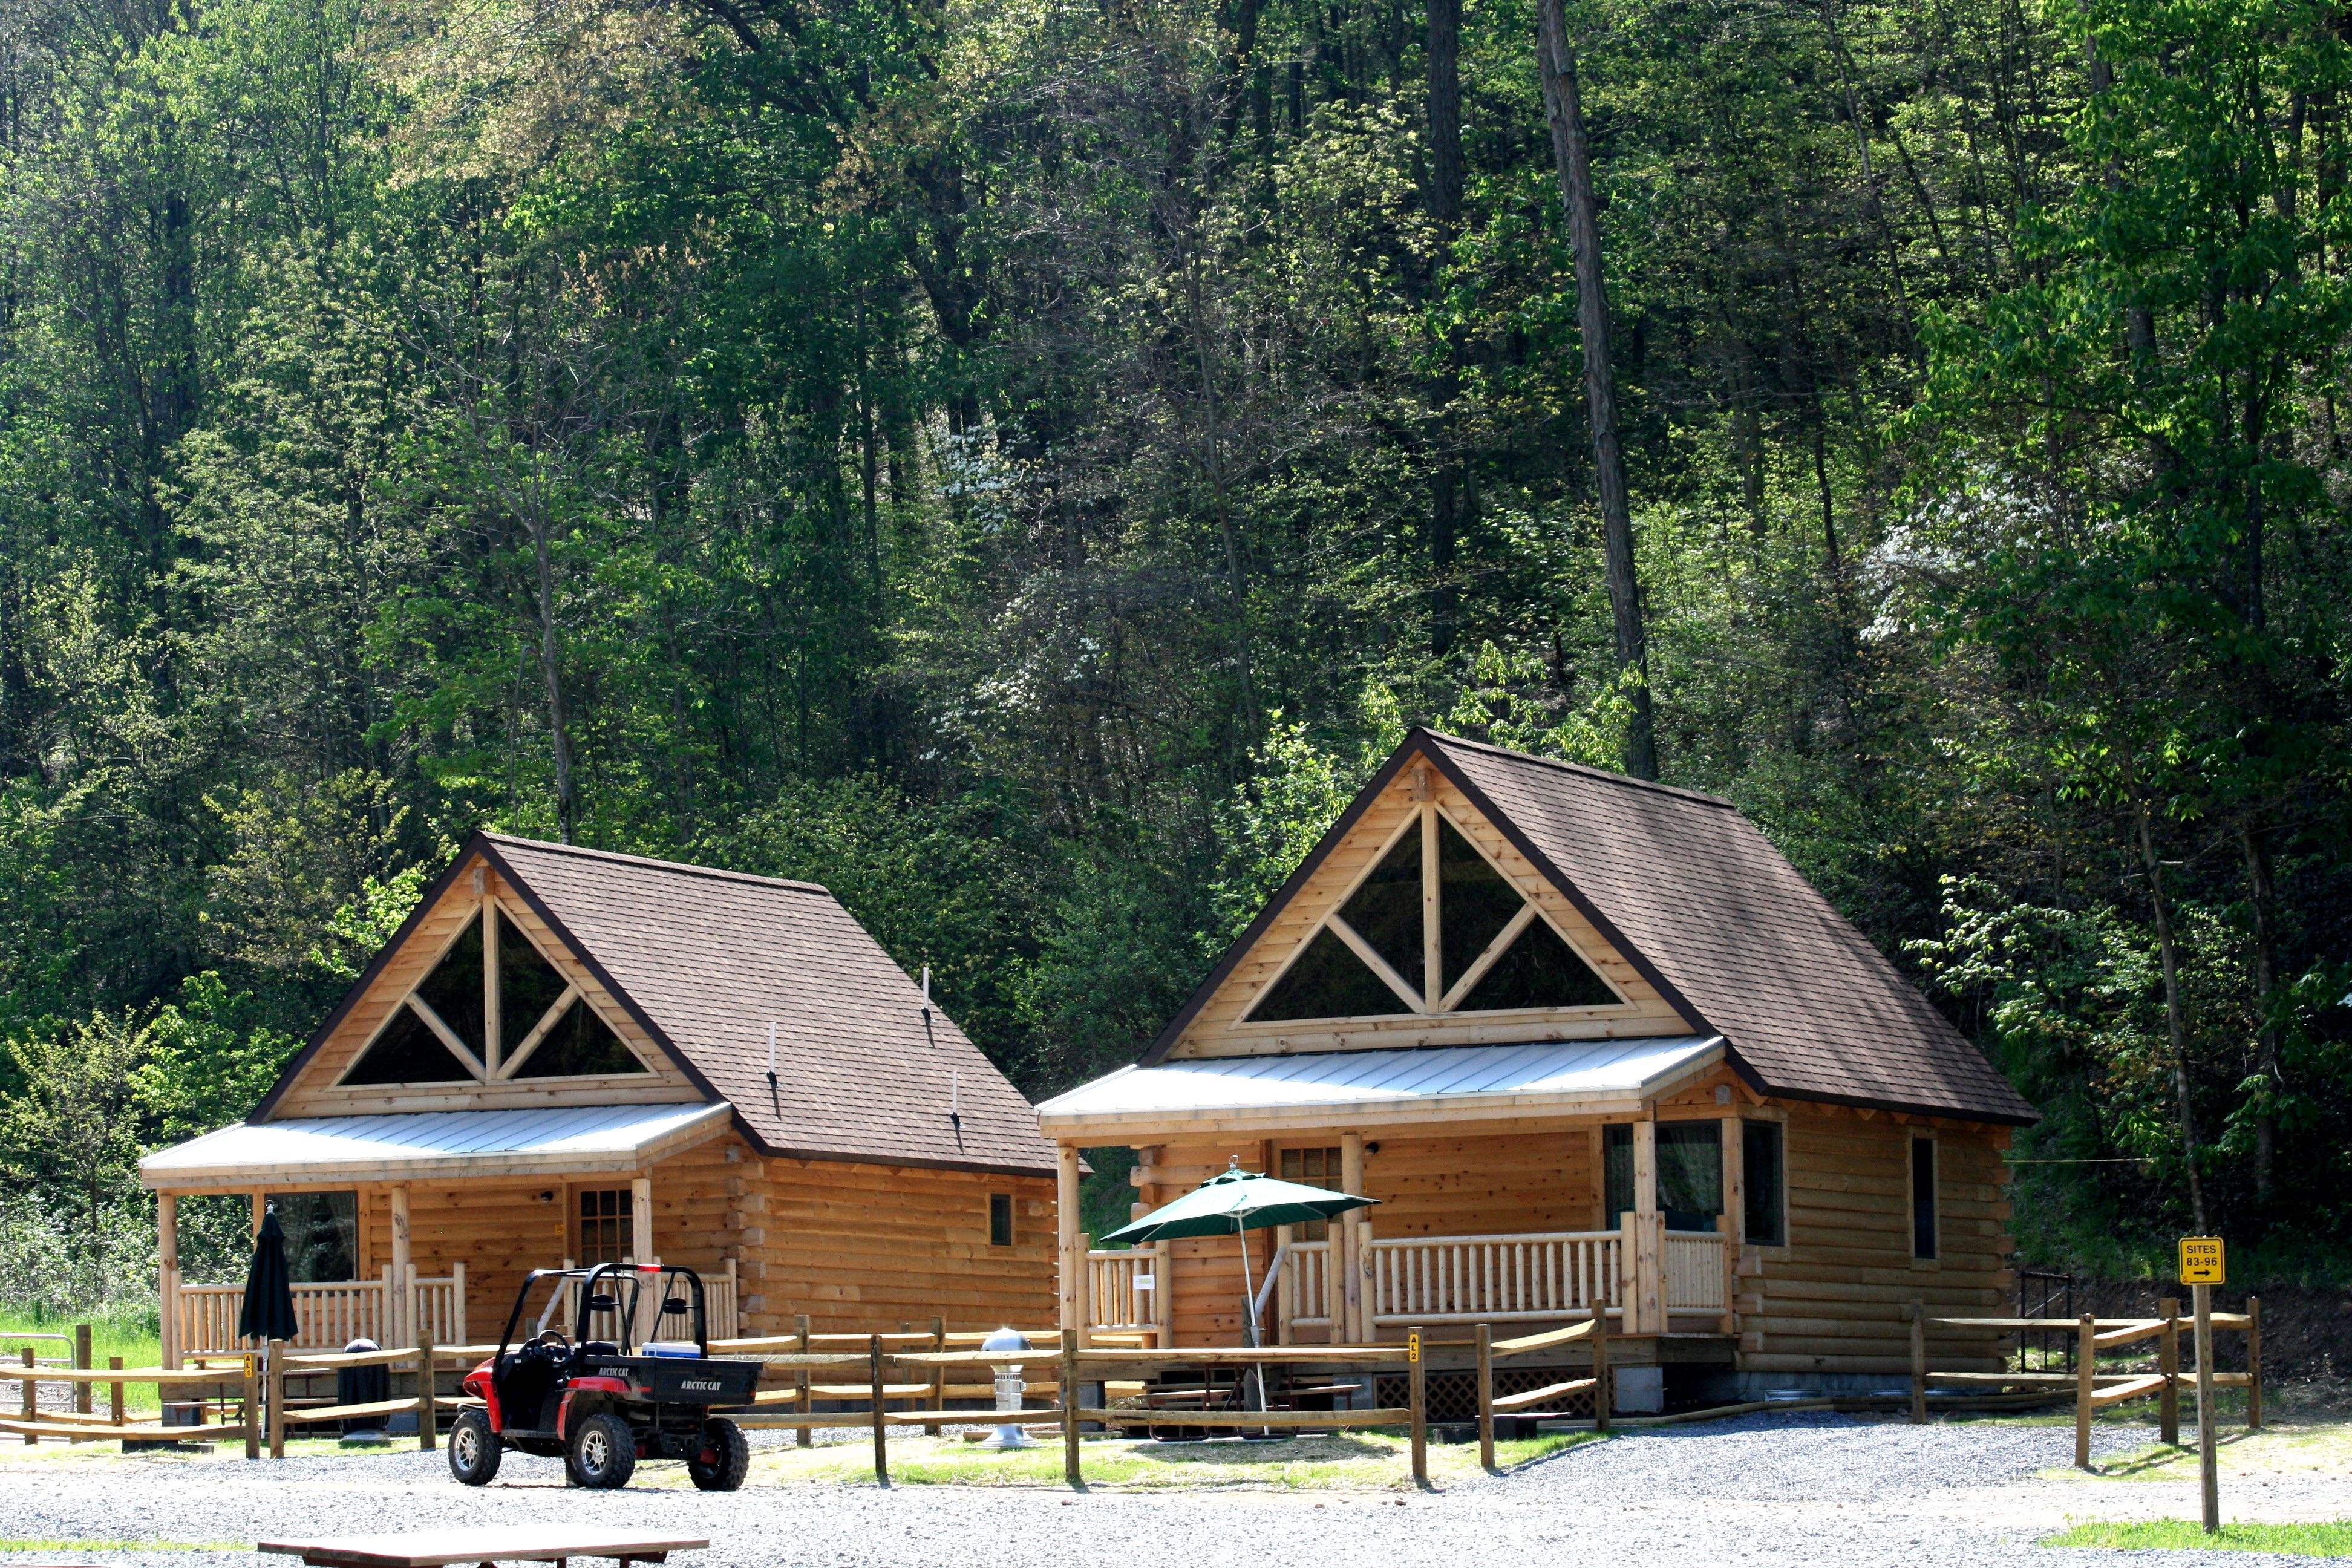 Ashland Koa Resort The Largest Campground On The Hatfield Mccoy Atv Trail System In West Virginia Hatfield Cabin Rentals Log Cabin Home Kits